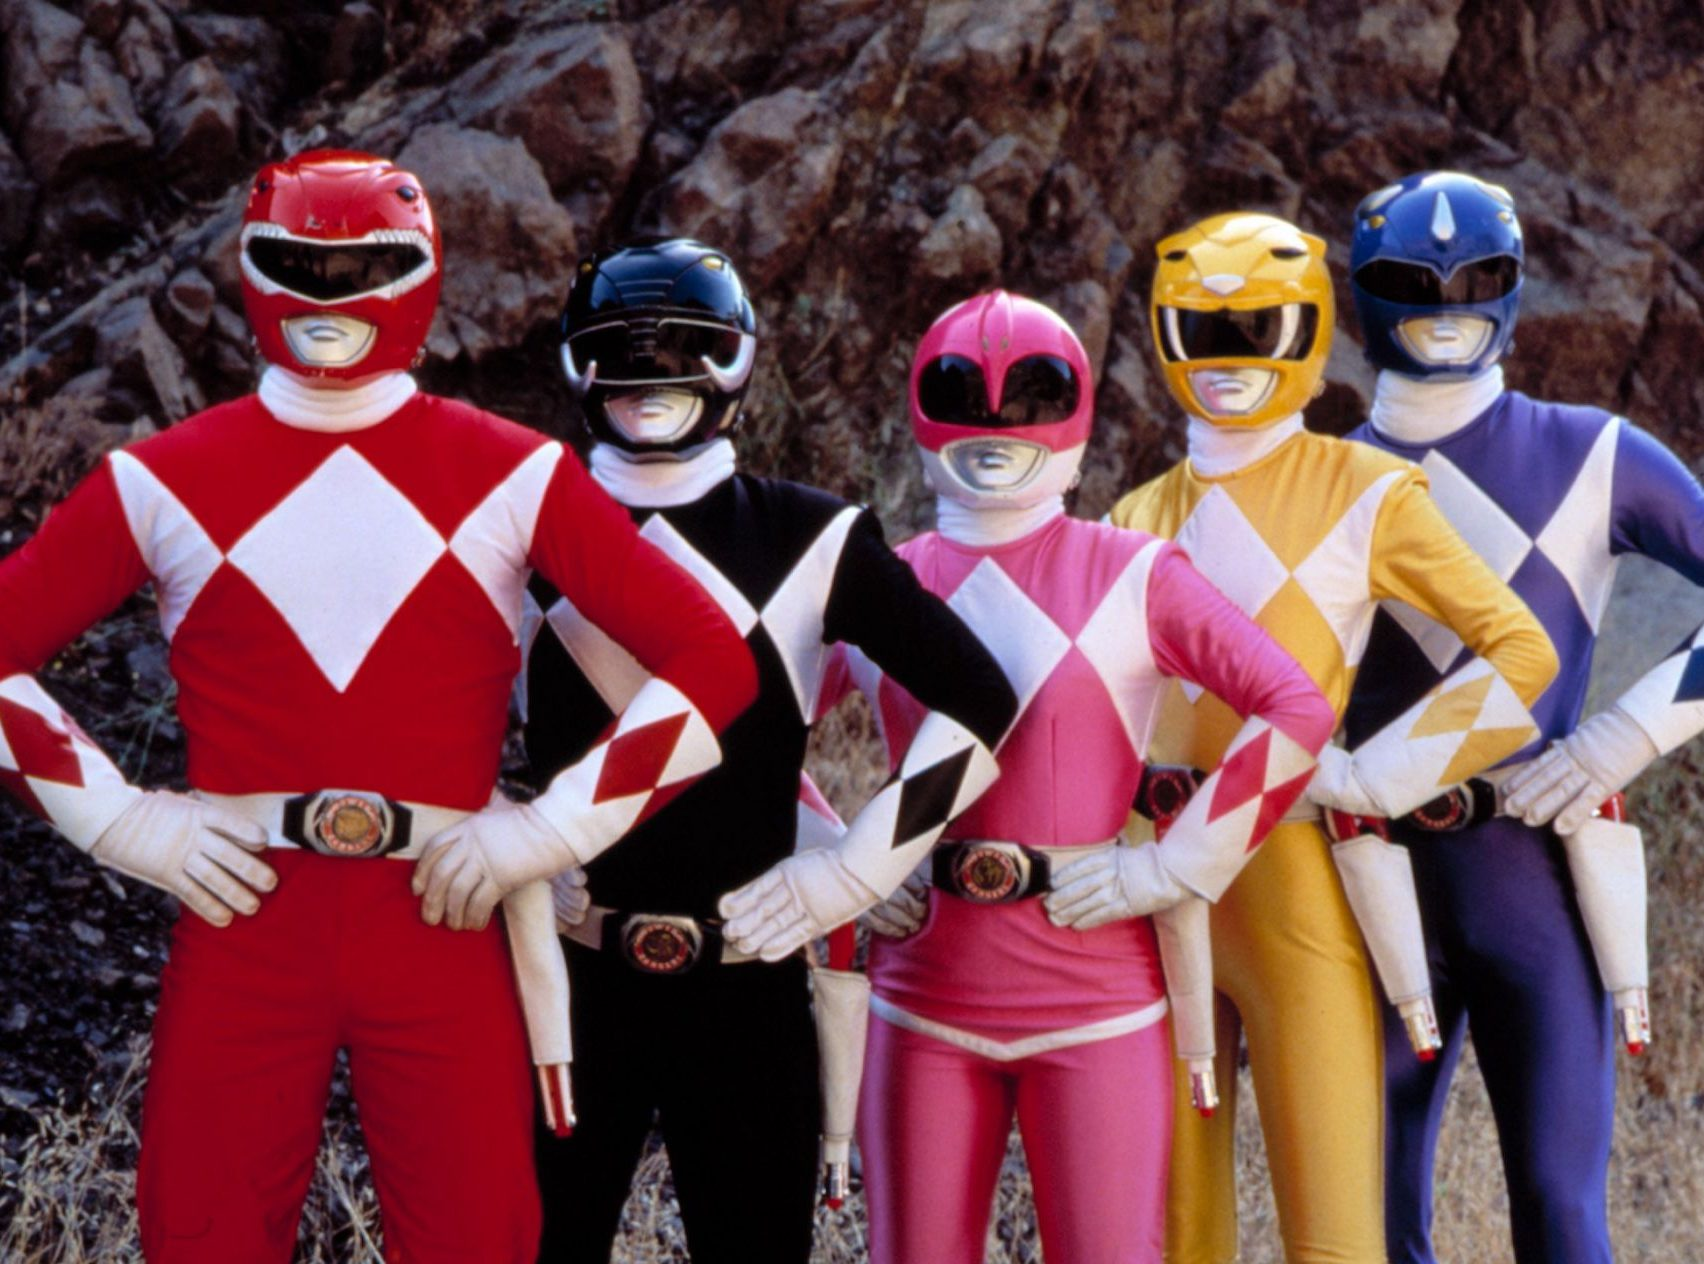 85a6f61150223c2519d28504e9a87191 e1606313875369 20 High-Kicking Facts About Mighty Morphin Power Rangers